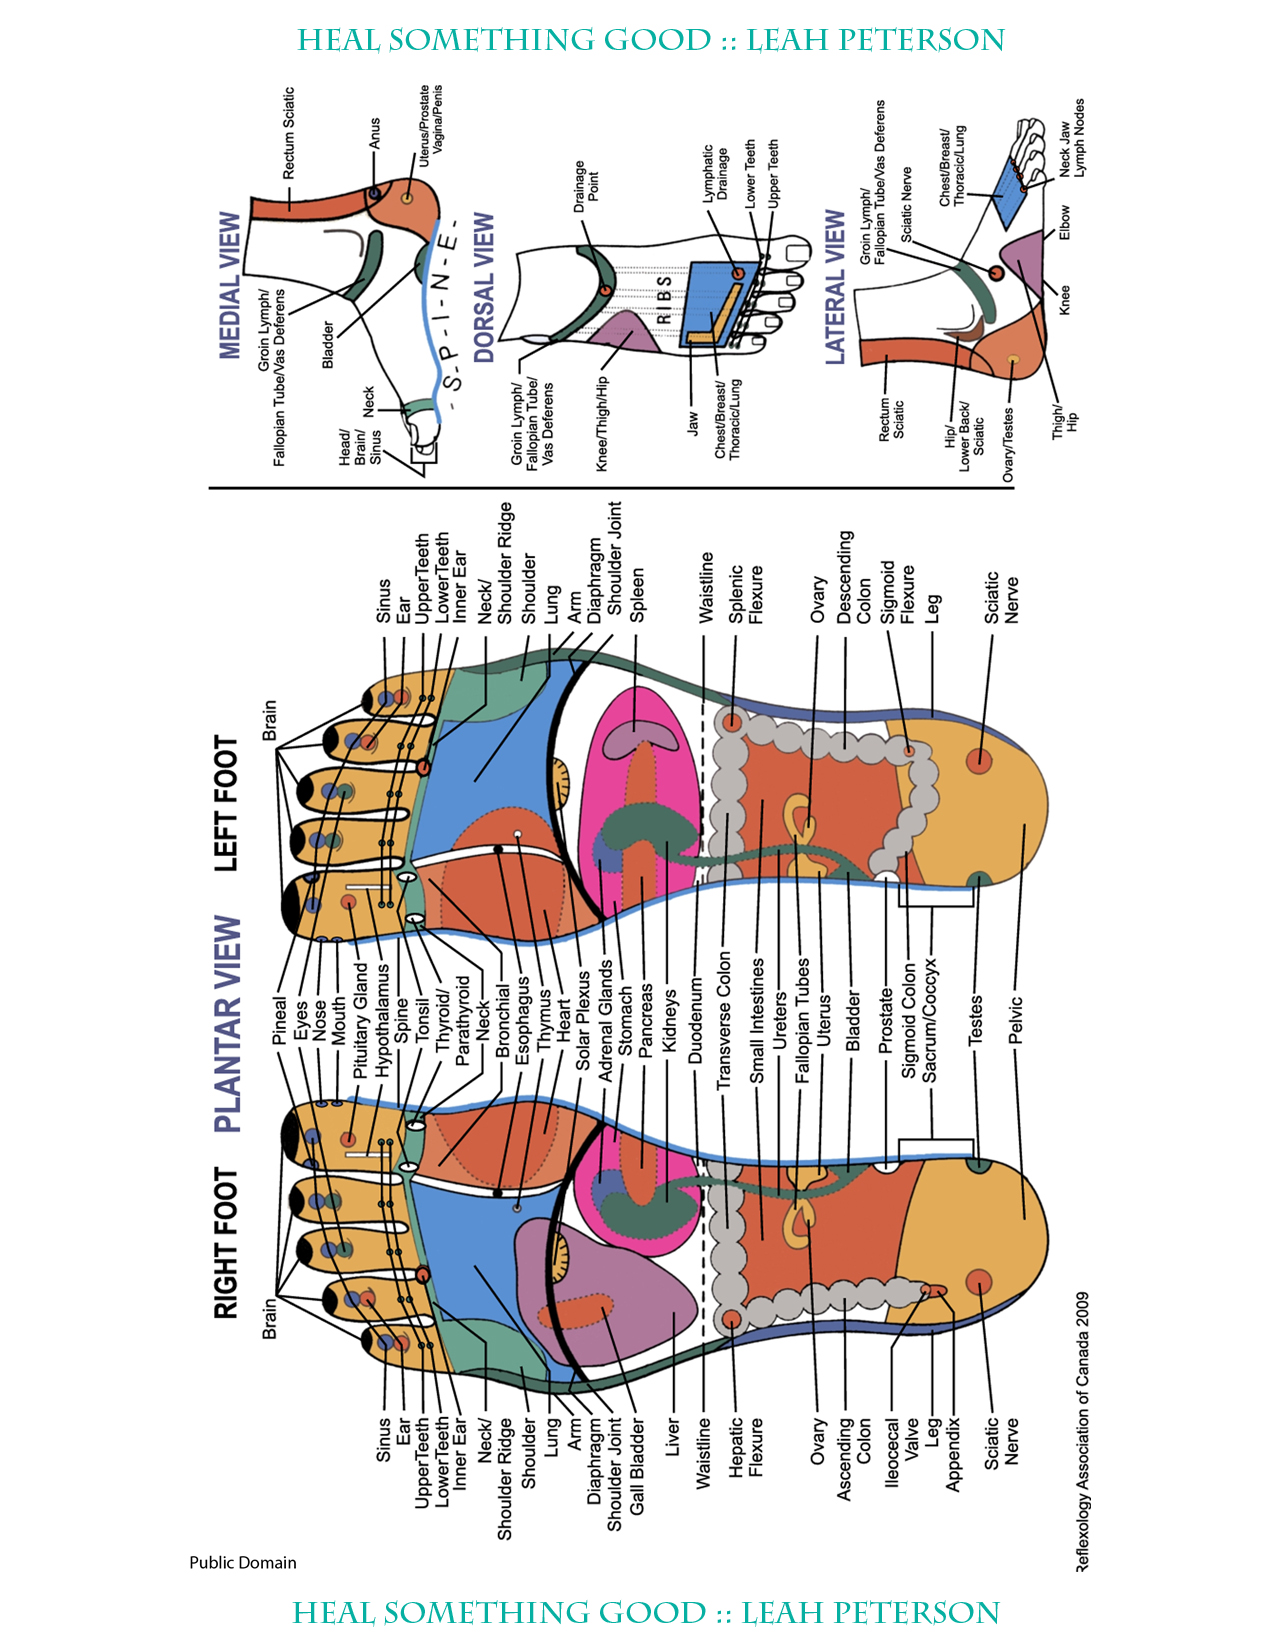 Chart Reflexive Foot Heal Something Good